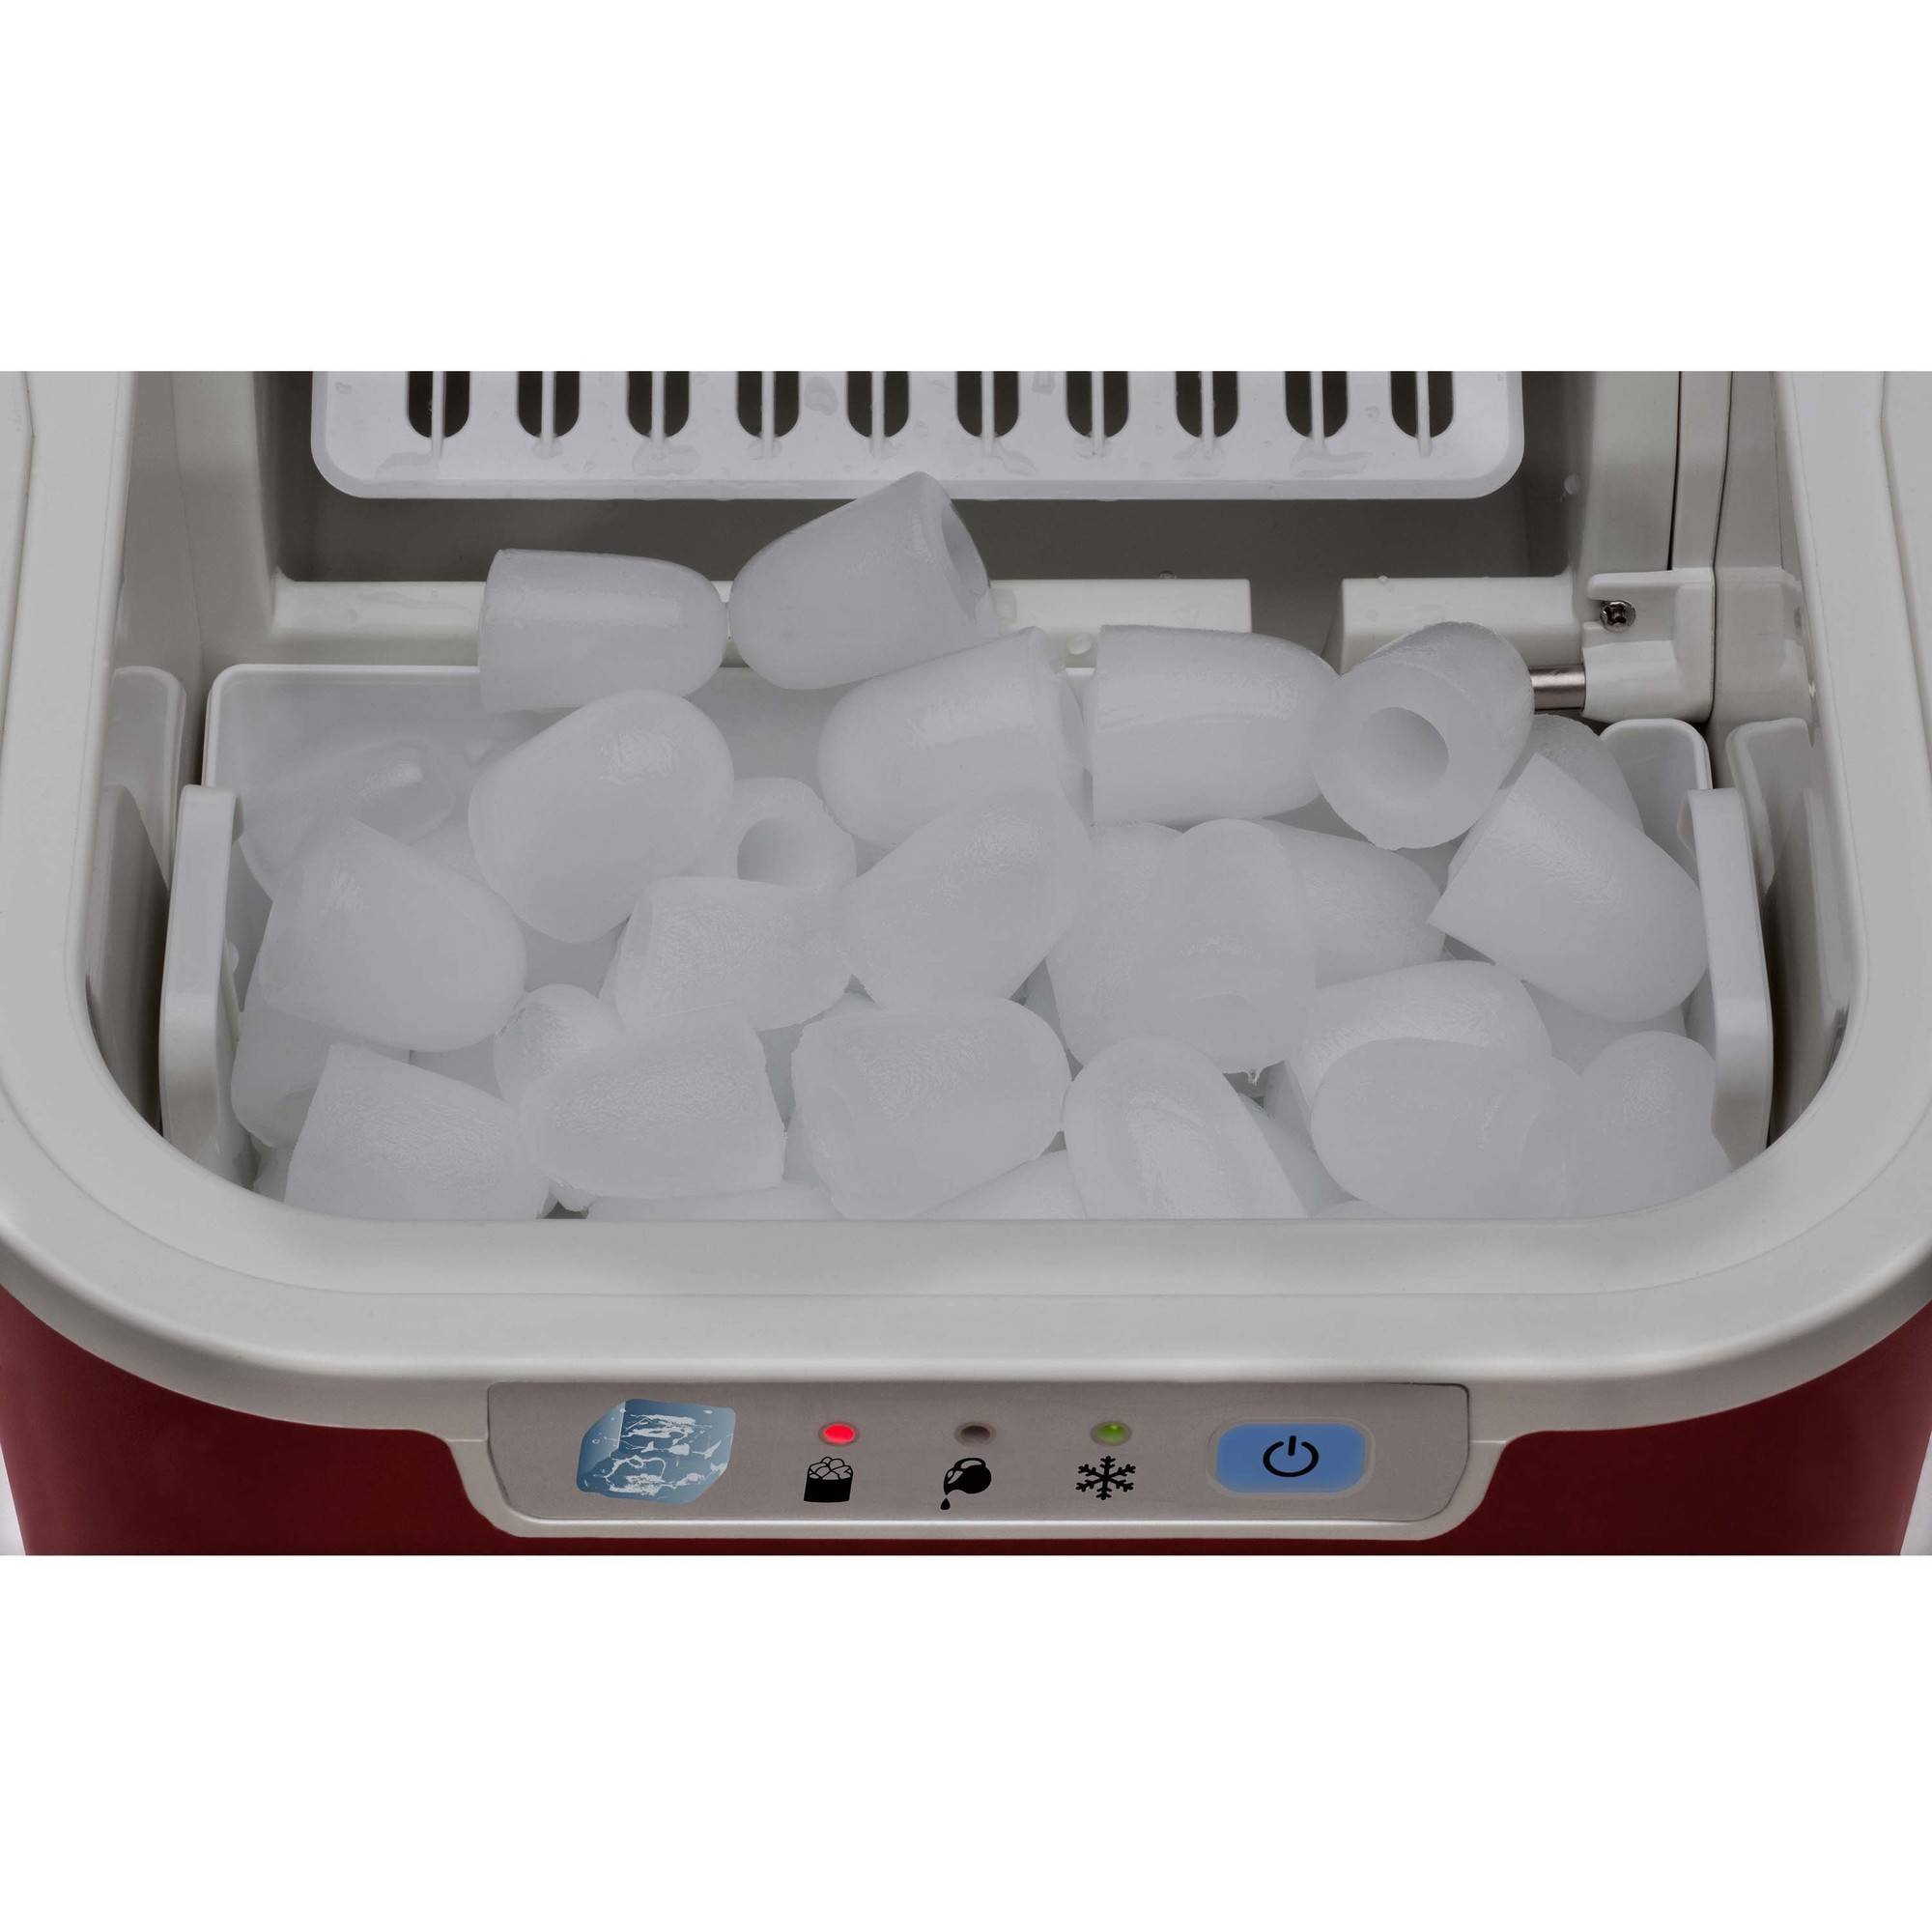 automatic portable maker icemaker appliances reviews countertop nostalgia lb ice electrics countertops wayfair pdx